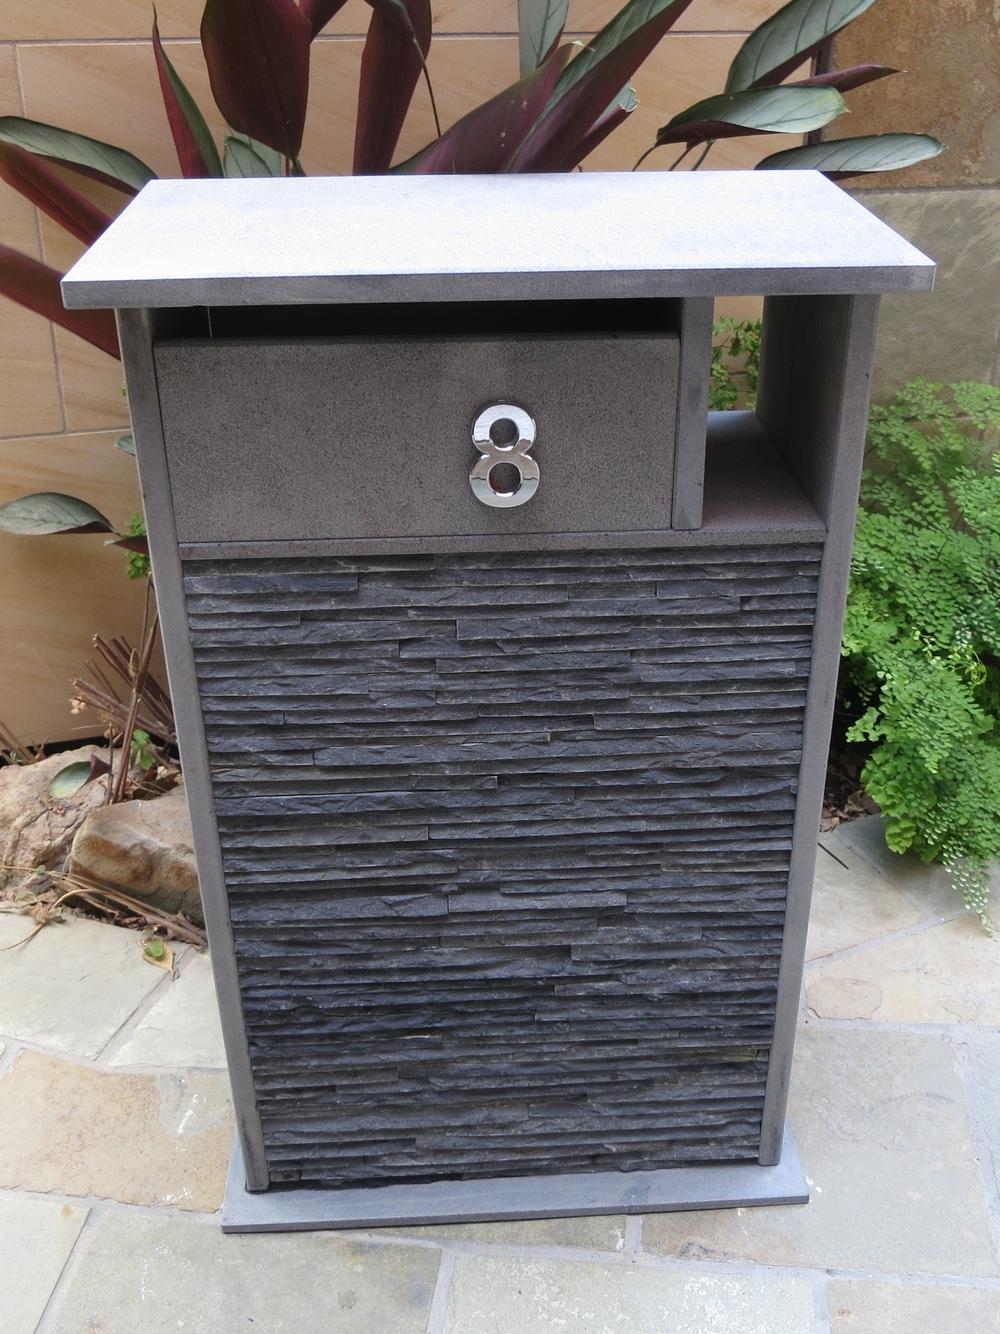 13. custom made letterbox one pc unit pick up from store only (60kg unit), price depends on Hight $661 to $750